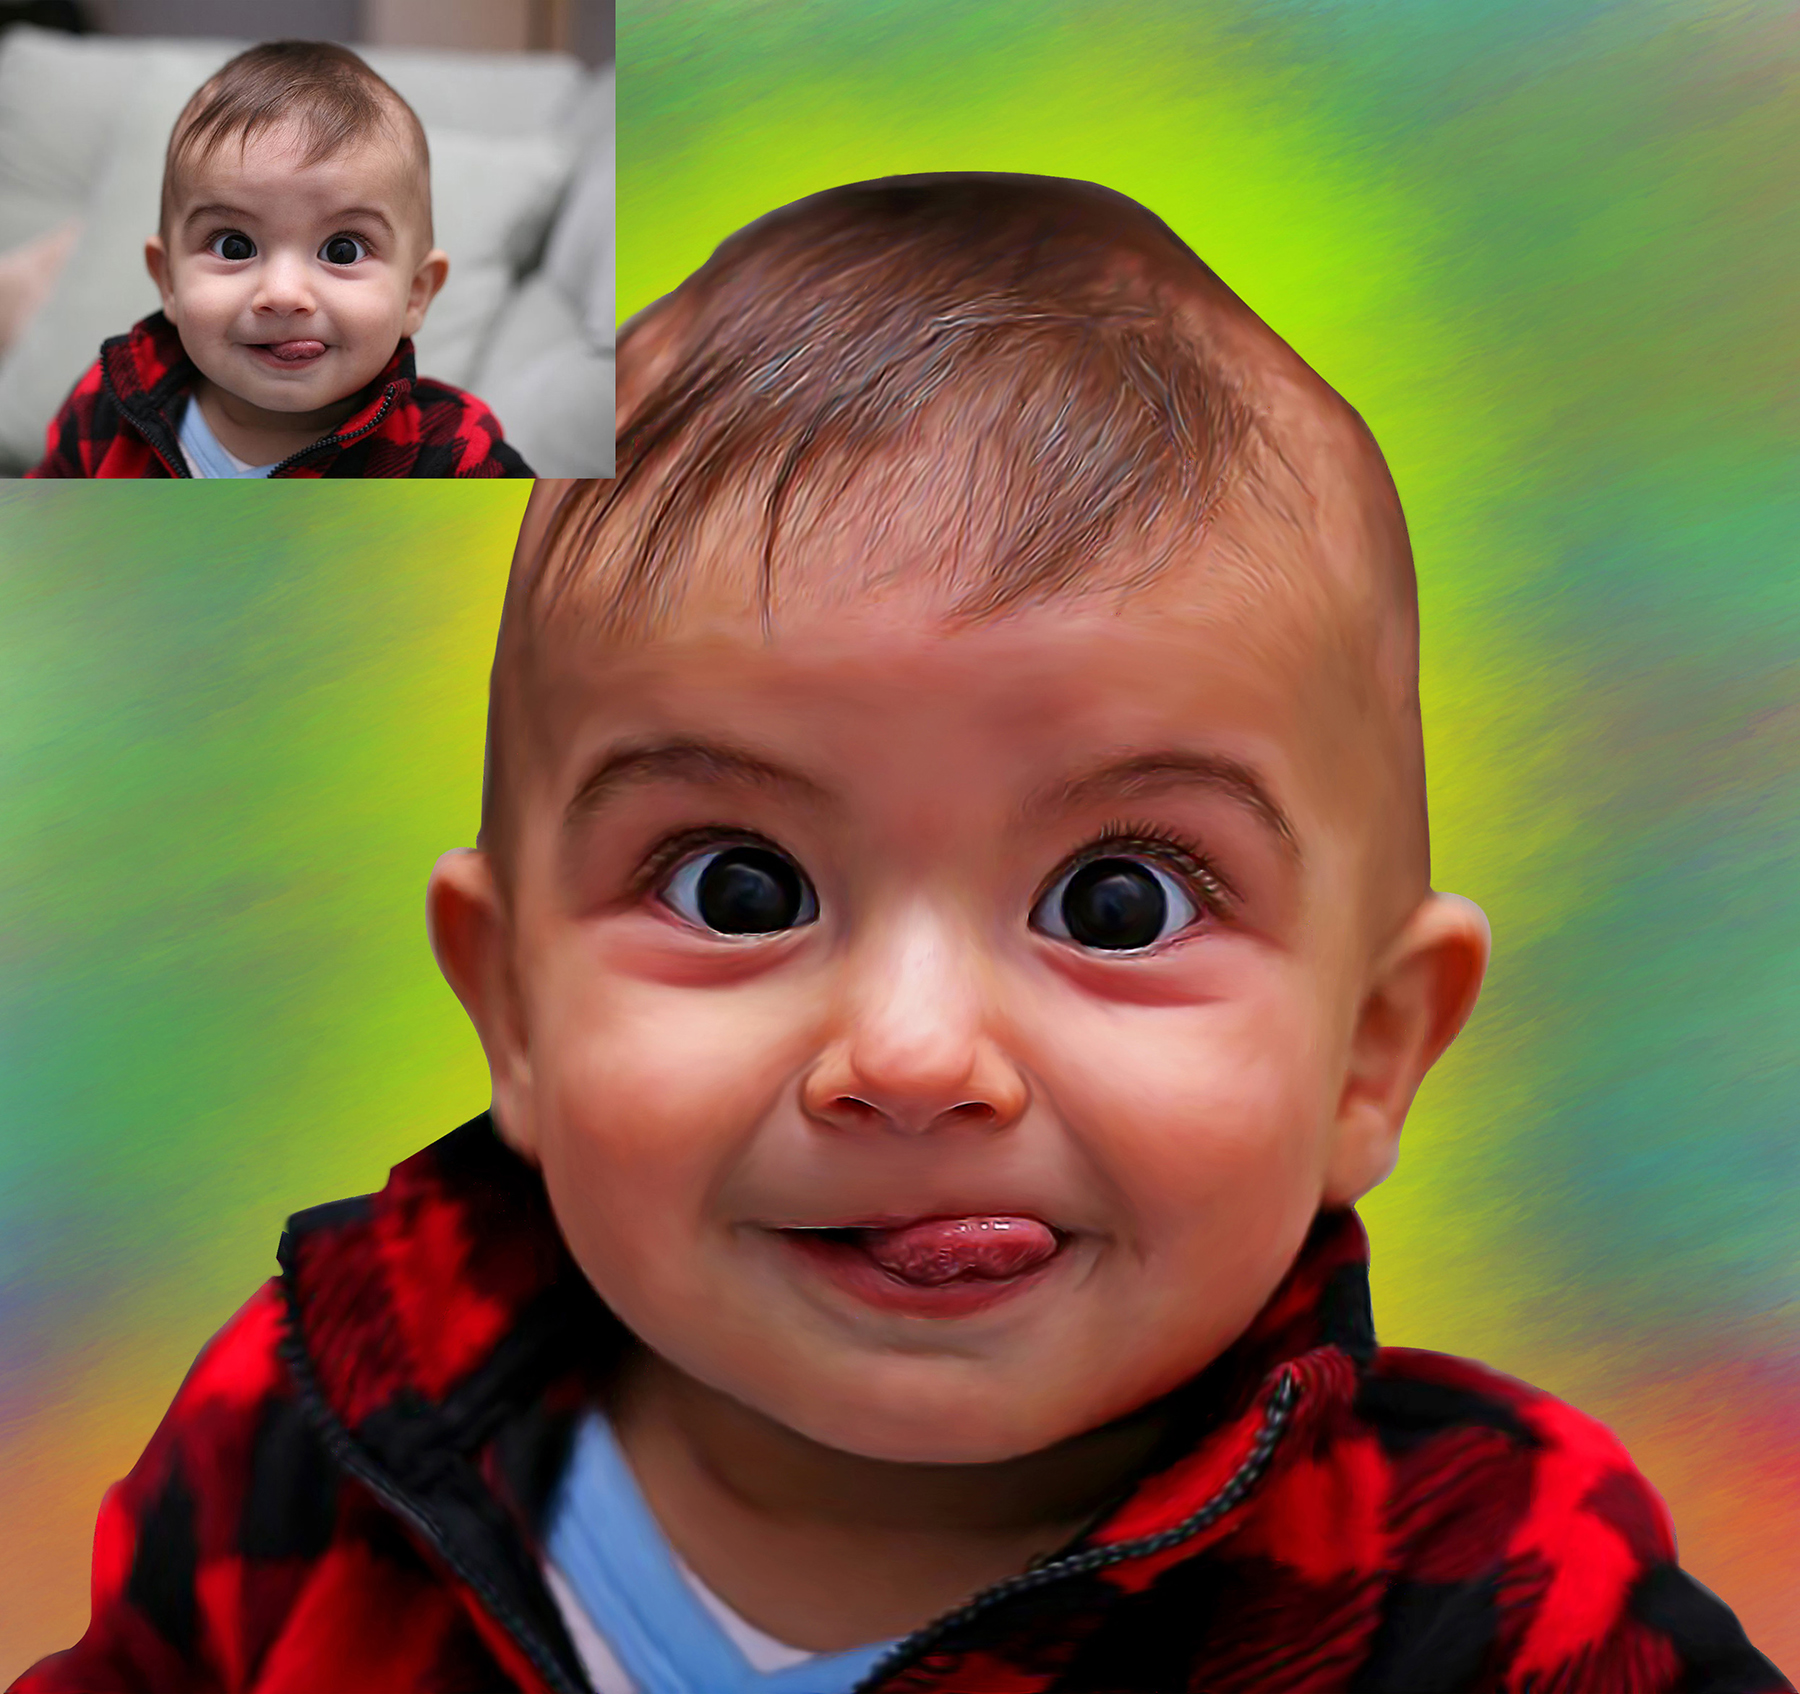 I will draw digital oil painting portrait based on your photo